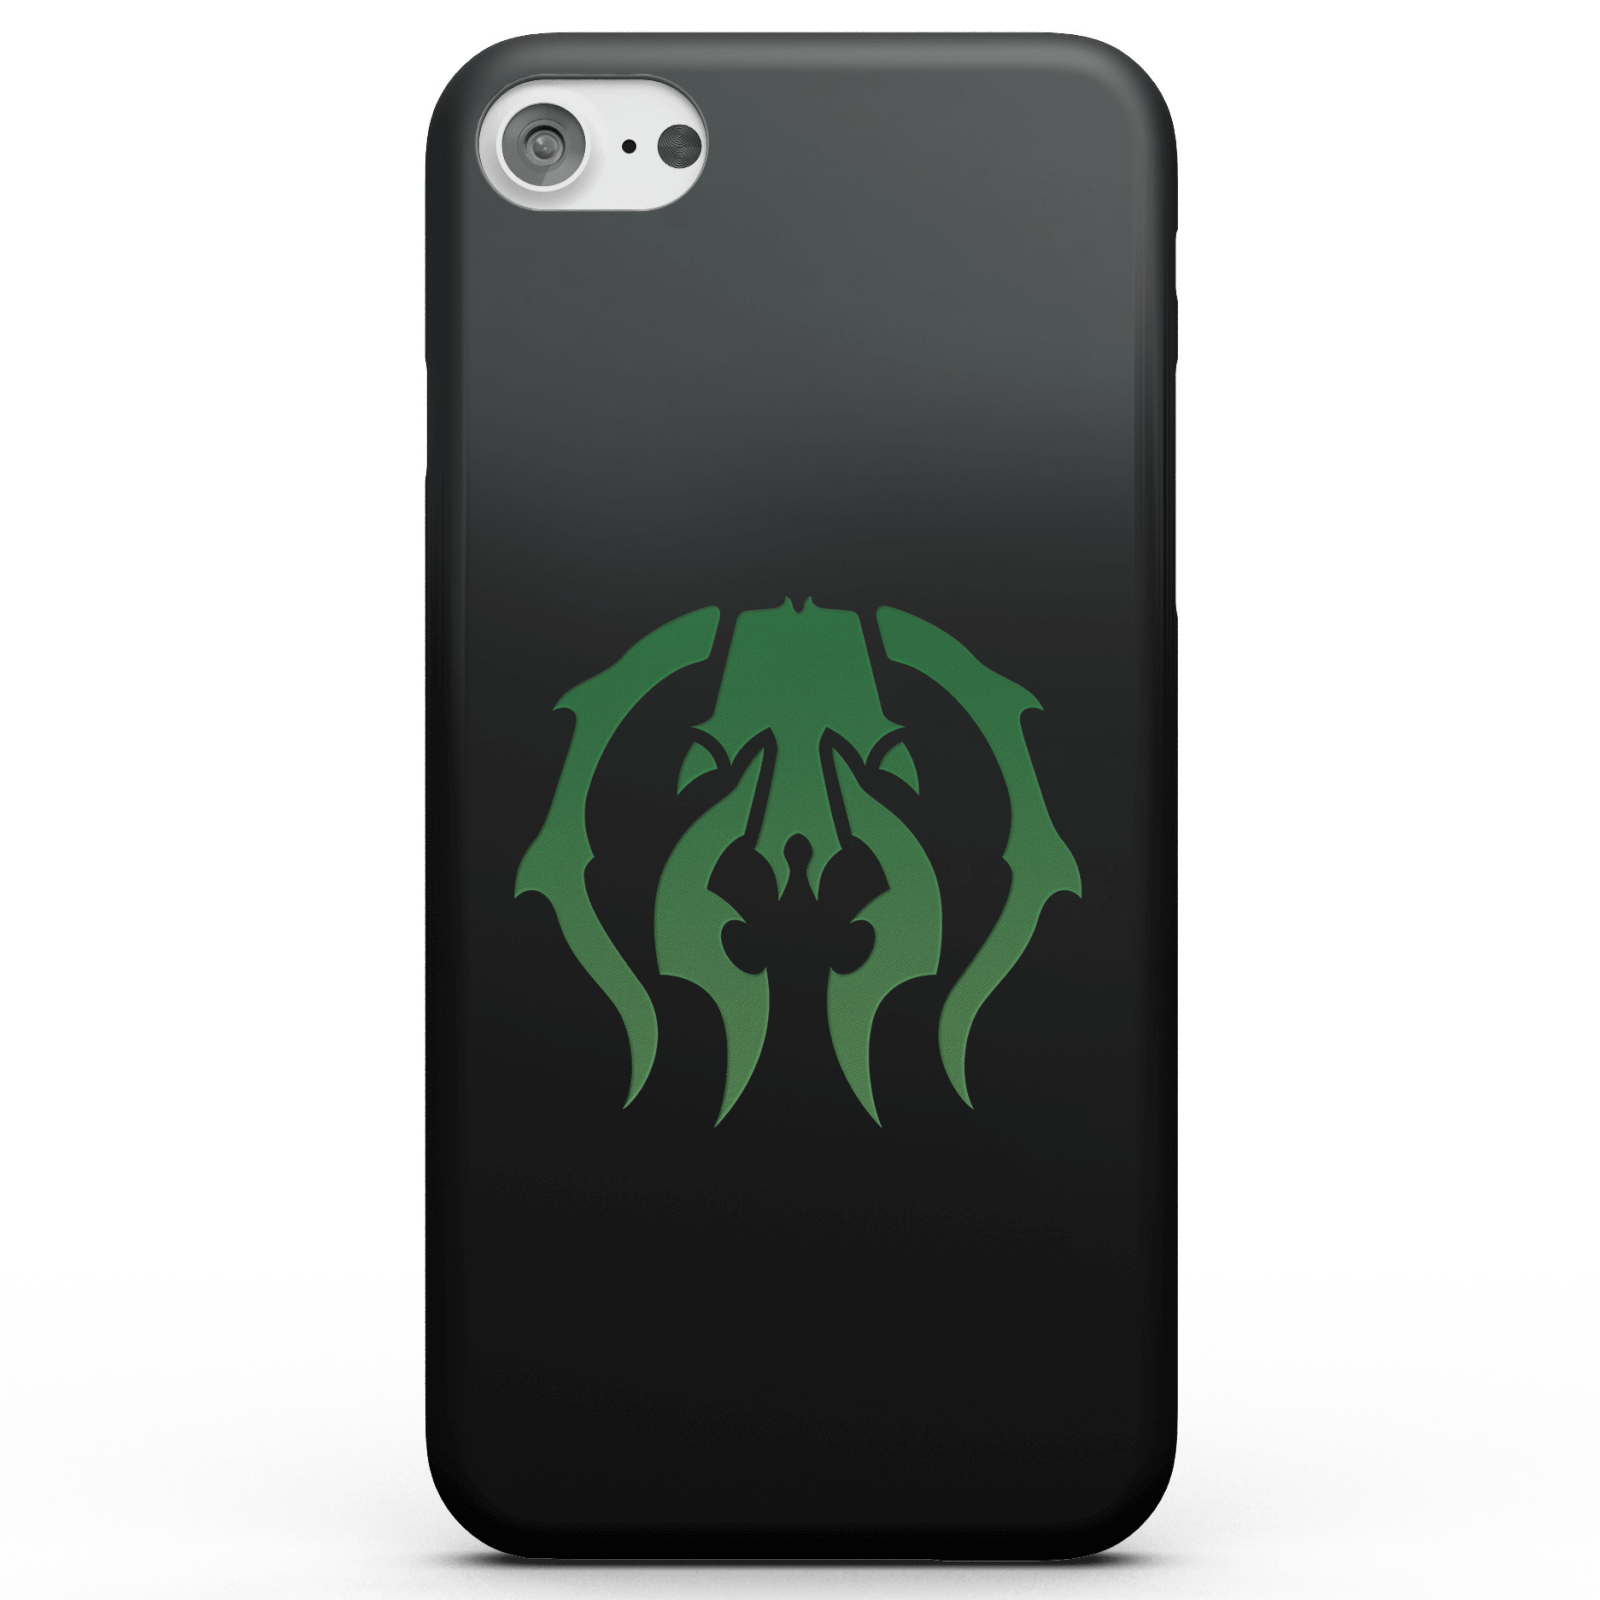 Funda Móvil Magic The Gathering Golgari para iPhone y Android - iPhone 7 Plus - Carcasa rígida - Mate de Magic The Gathering